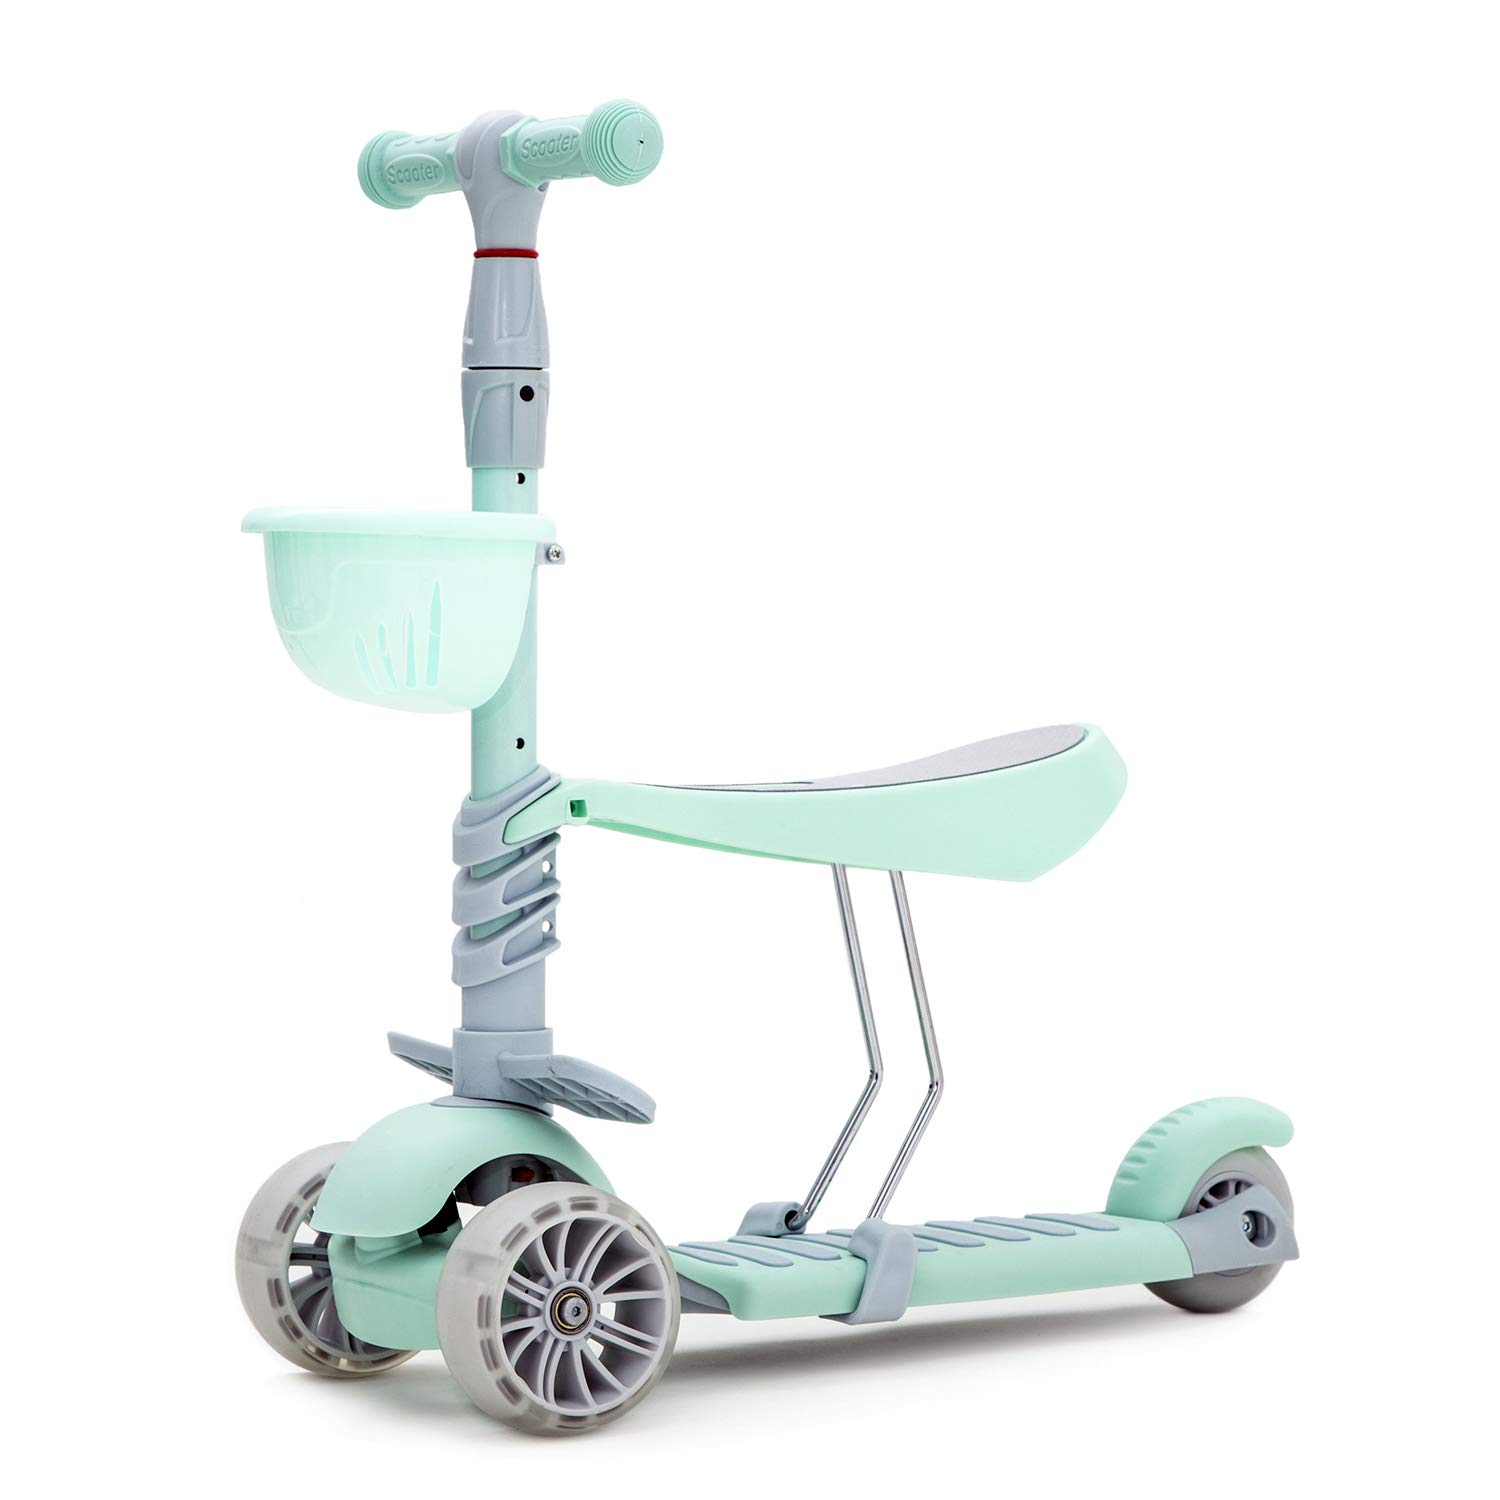 KAMURES 2-in-1 | 3 Wheels Kick Scooter with Removable Seat for Kids & Toddlers, 5 Adjustable Height Kids Scooter with Extra-Wide PU Flashing Wheels, Best Gift for Boys Girls Age Over 3 Years Old(3-8)